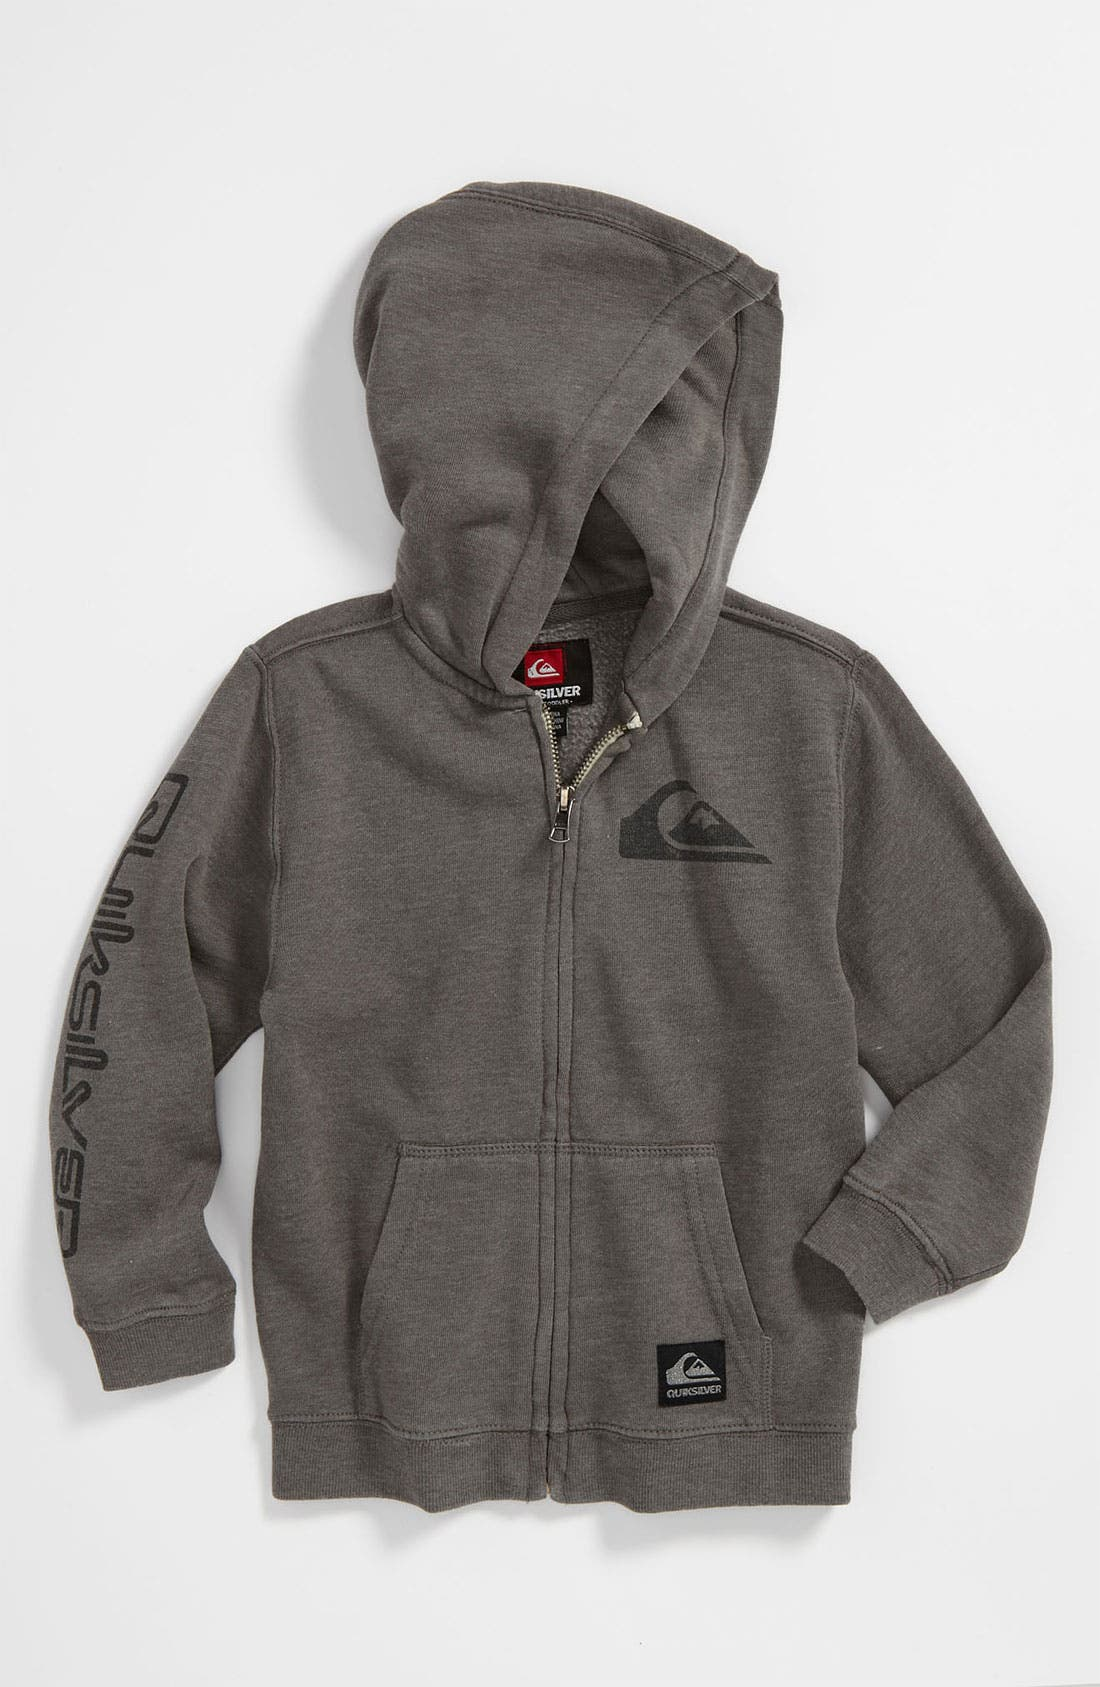 Main Image - Quiksilver 'Refresher' Hoodie (Toddler)